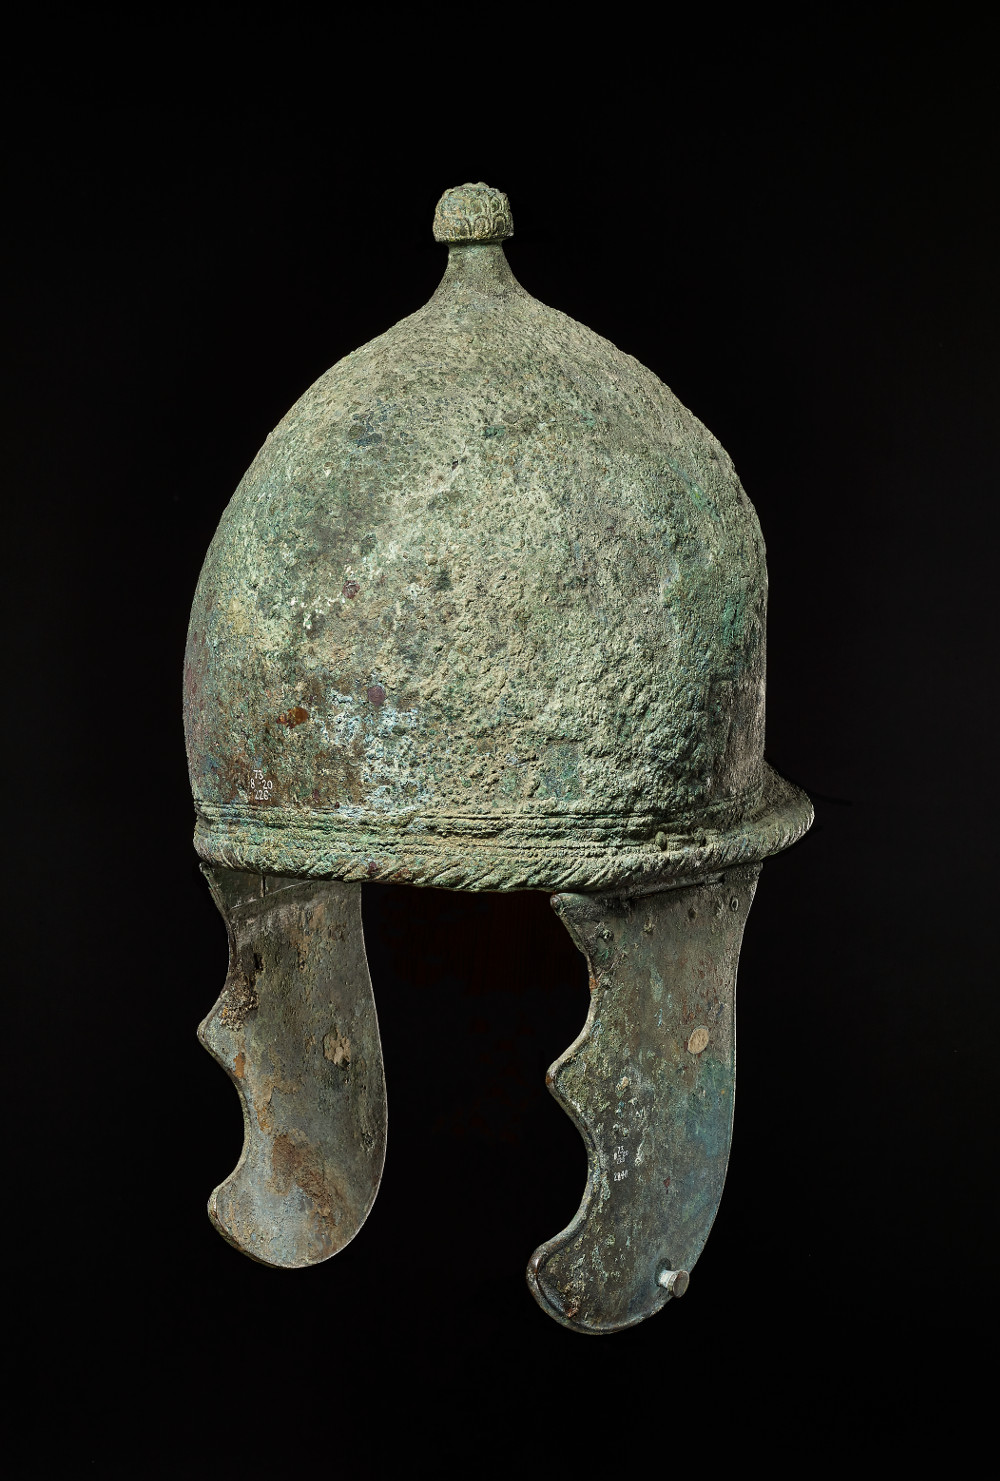 Roman Montefortino helmet  - Bronze299–200 BCPuglia, ItalyBritish MuseumThe Montefortino helmet was introduced to Italy by invading Celts. It is arguably the most successful type of helmet ever designed. The type is distinguished by its neckguard, topknot and cheek-pieces, though these attachments rarely survive. The Roman army deployed this style of helmet unchanged for centuries. It is a prime example of the Romans incorporating the most successful elements of opposing armies into their strategy.